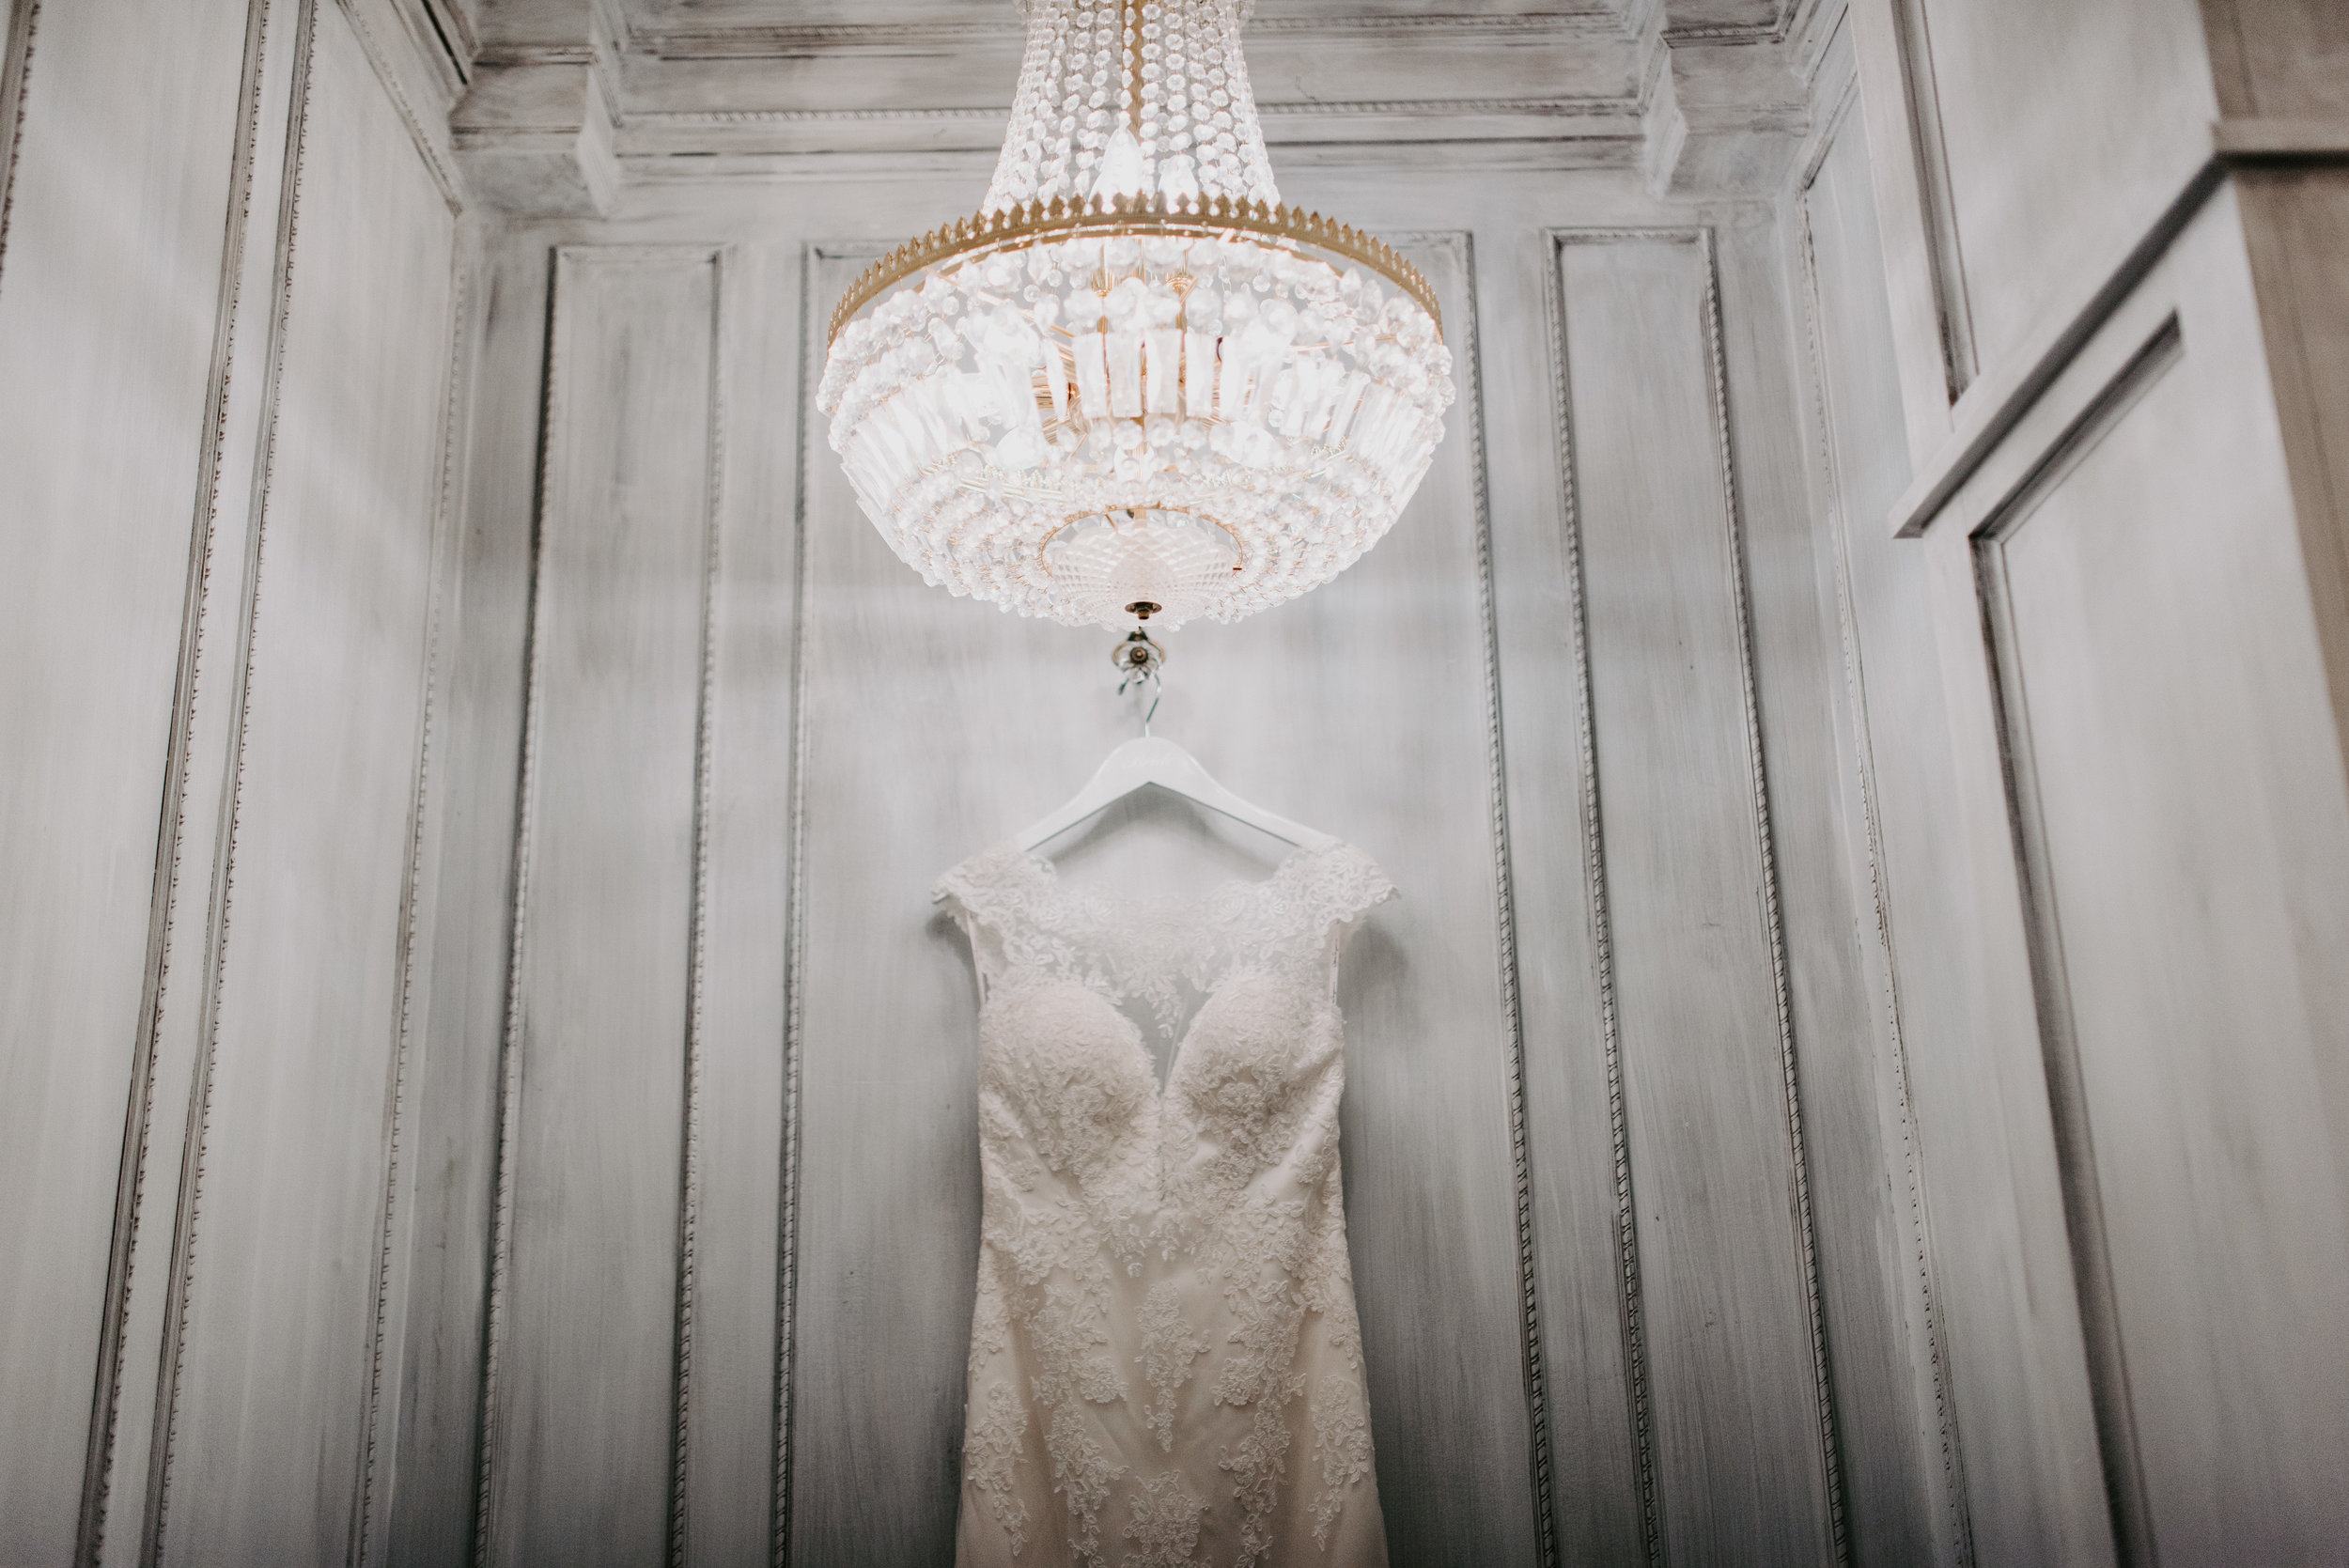 lace wedding dress under chandelier with white walls